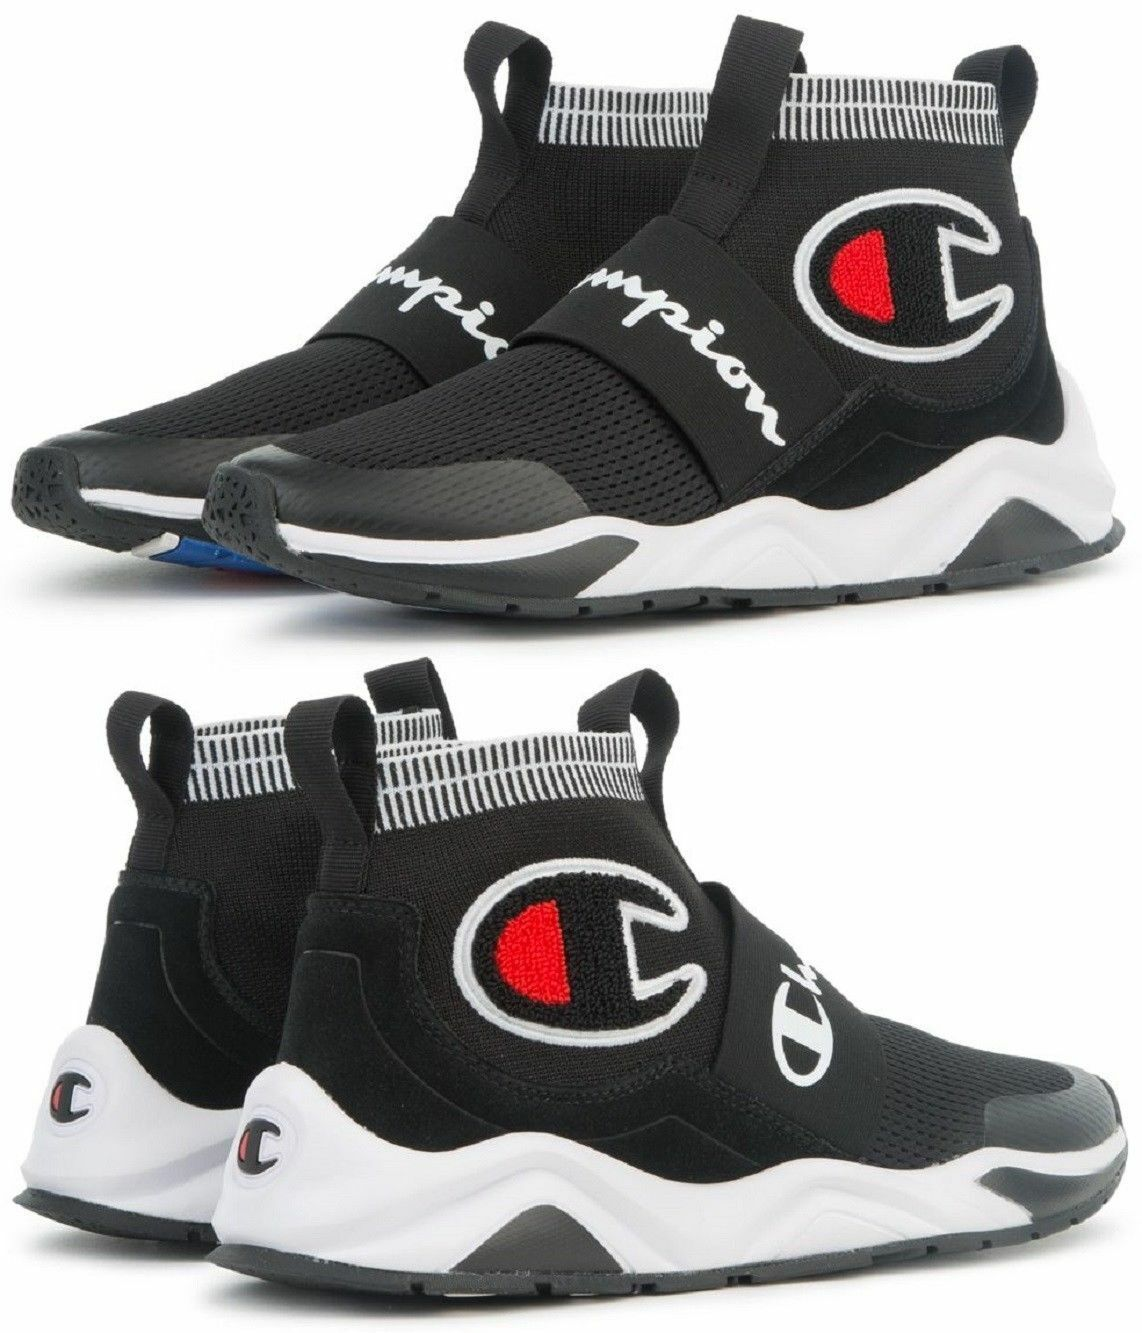 2019 Mens Champion Rally Pro Men's Sneakers Lifestyle Shoes